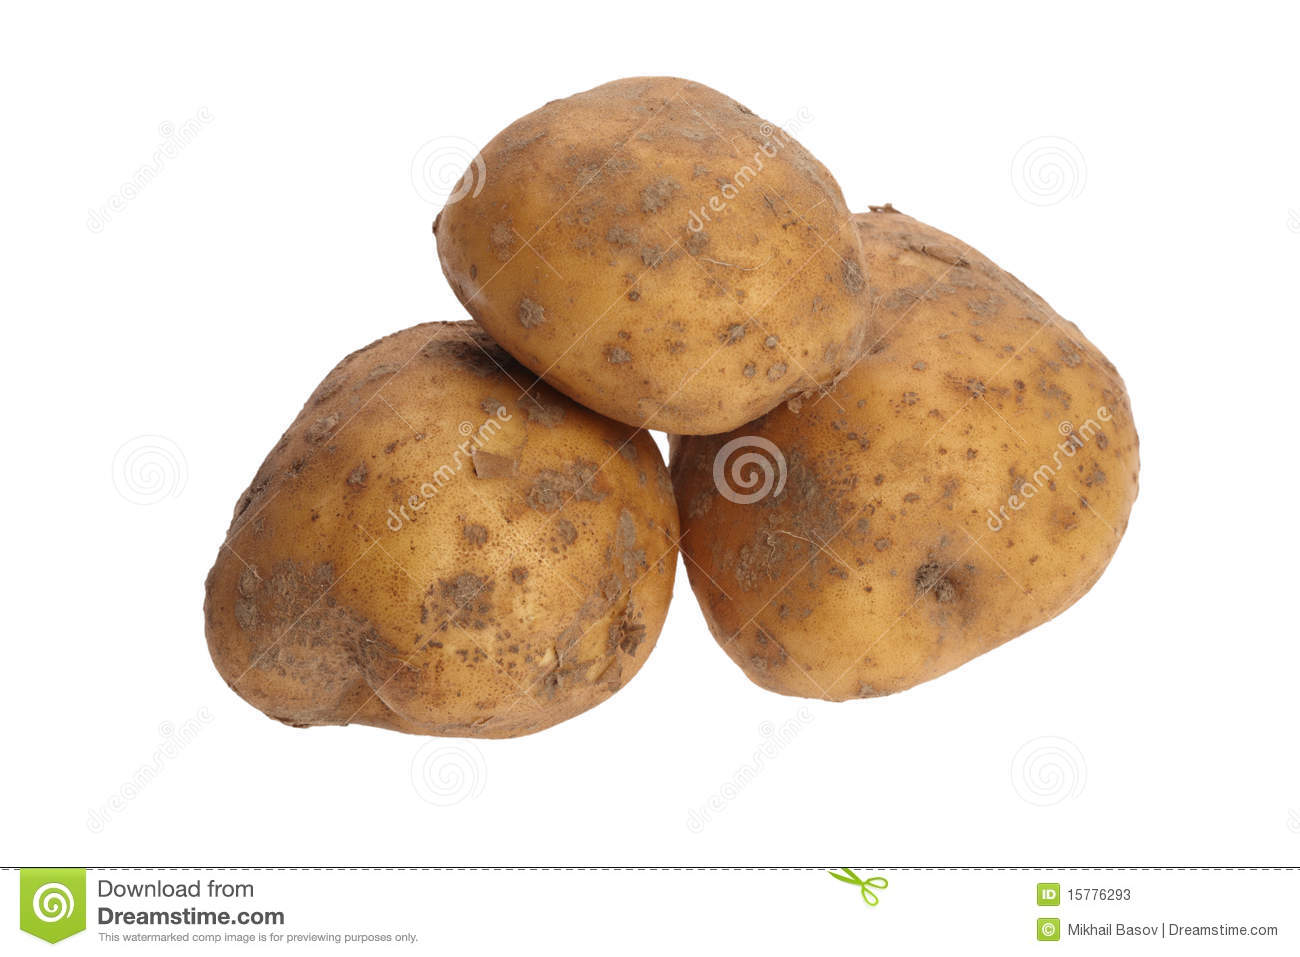 estimating osmolarity by change in volume of potato tuber Determining the water potential of potato tuber cells i will carry out an investigation that will enable me to determine the water potential of the tested potato tuber cells.